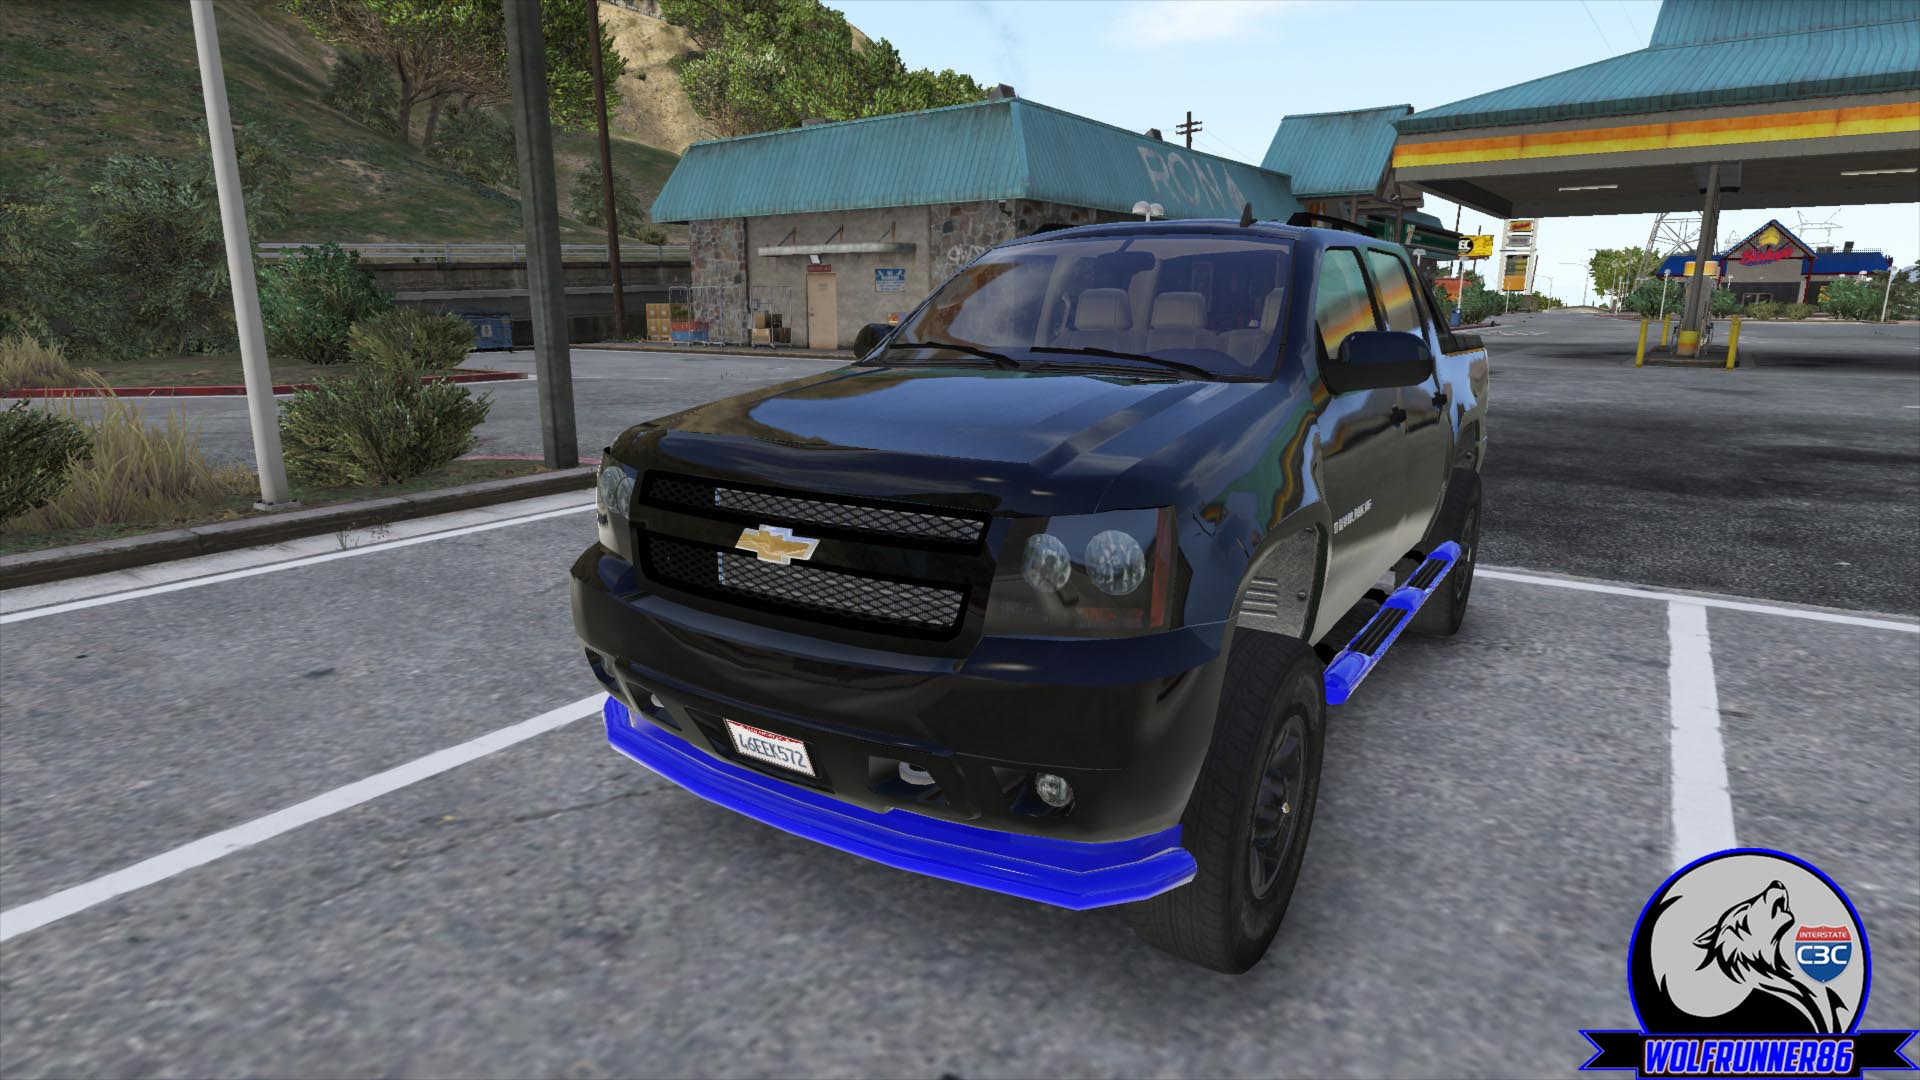 2010 Chevy Avalanche GTA5 Mods